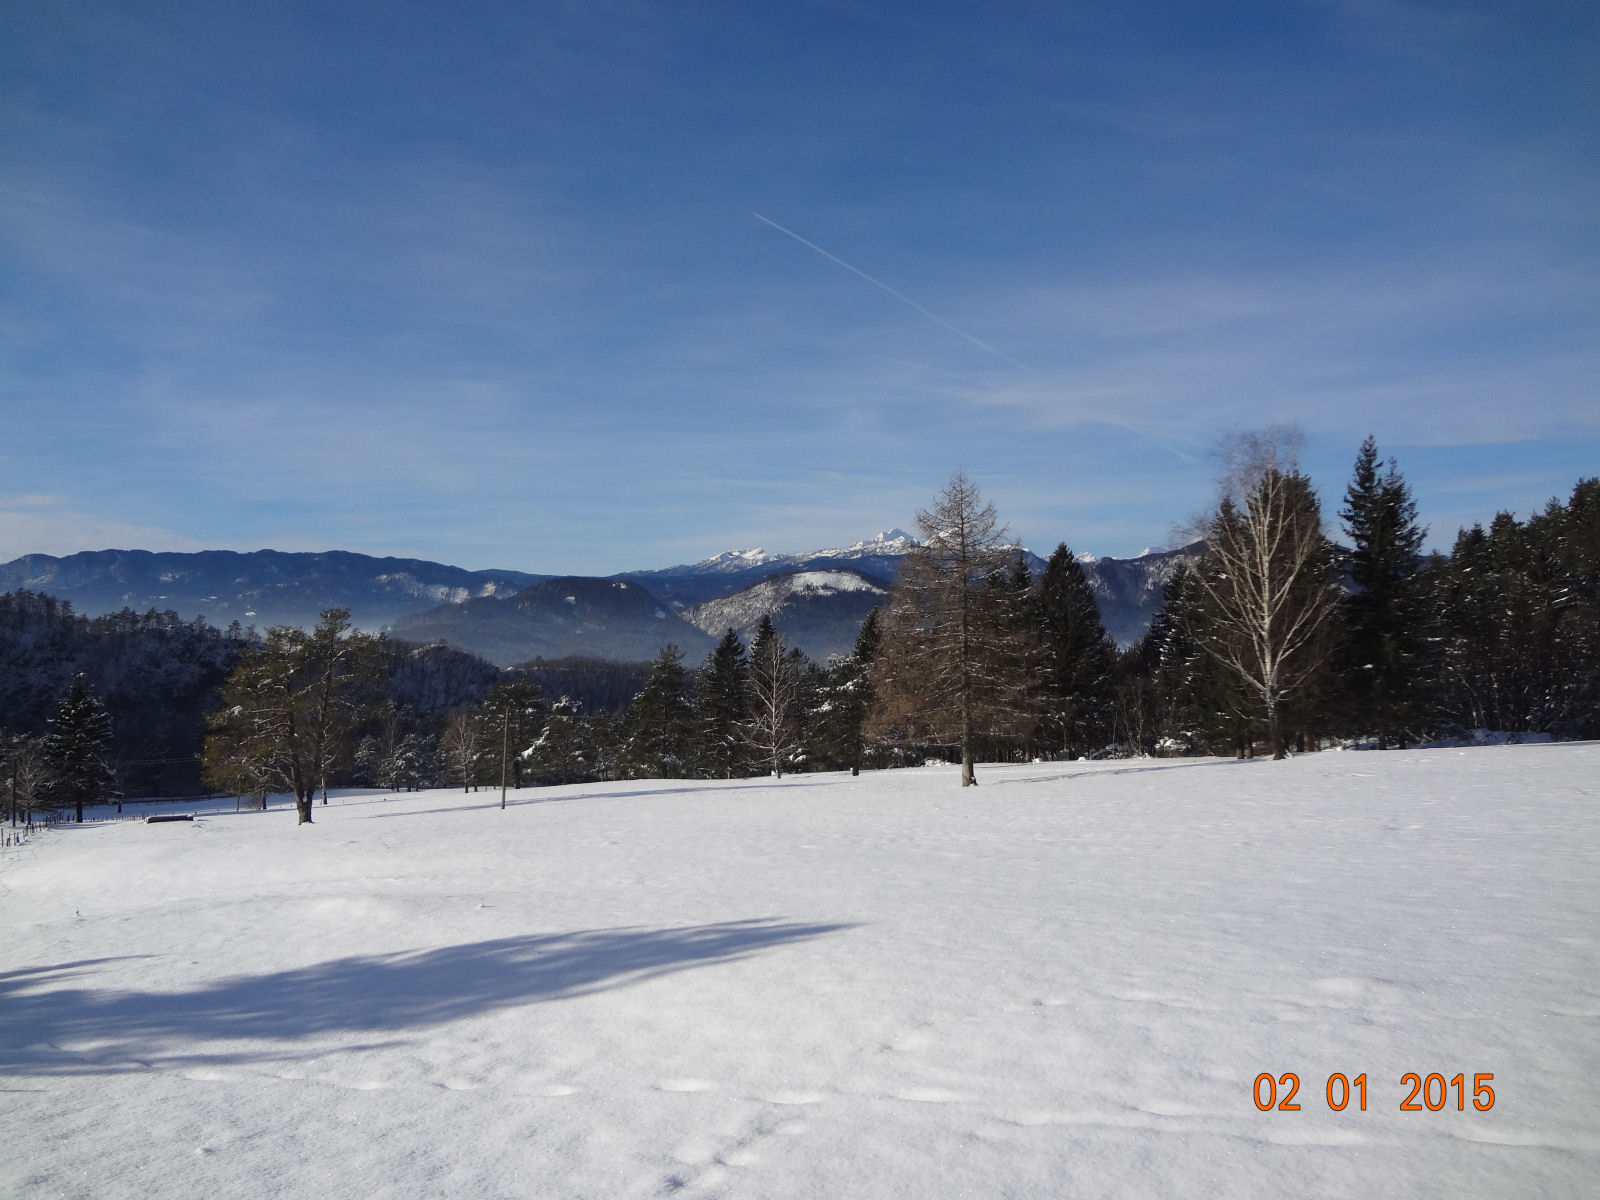 The Gorenjska region of Slovenia has lots of sun and snow during winter